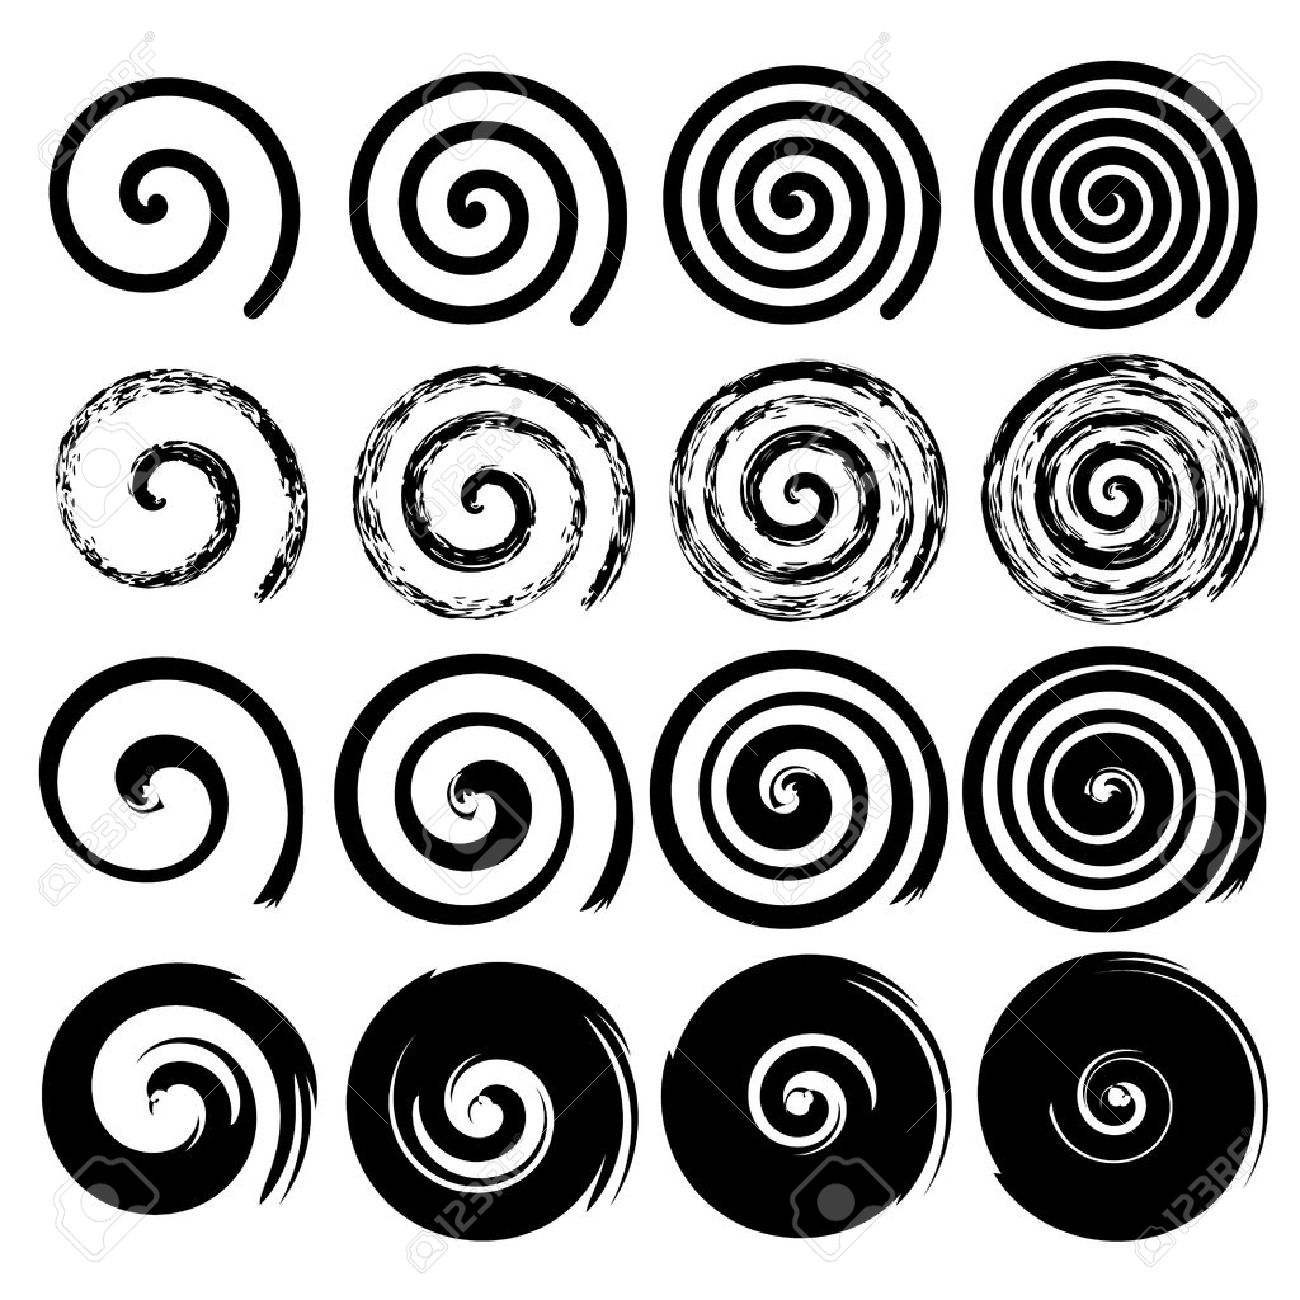 Set of black spiral motion elements isolated objects different brush texture vector illustrations - 40260582